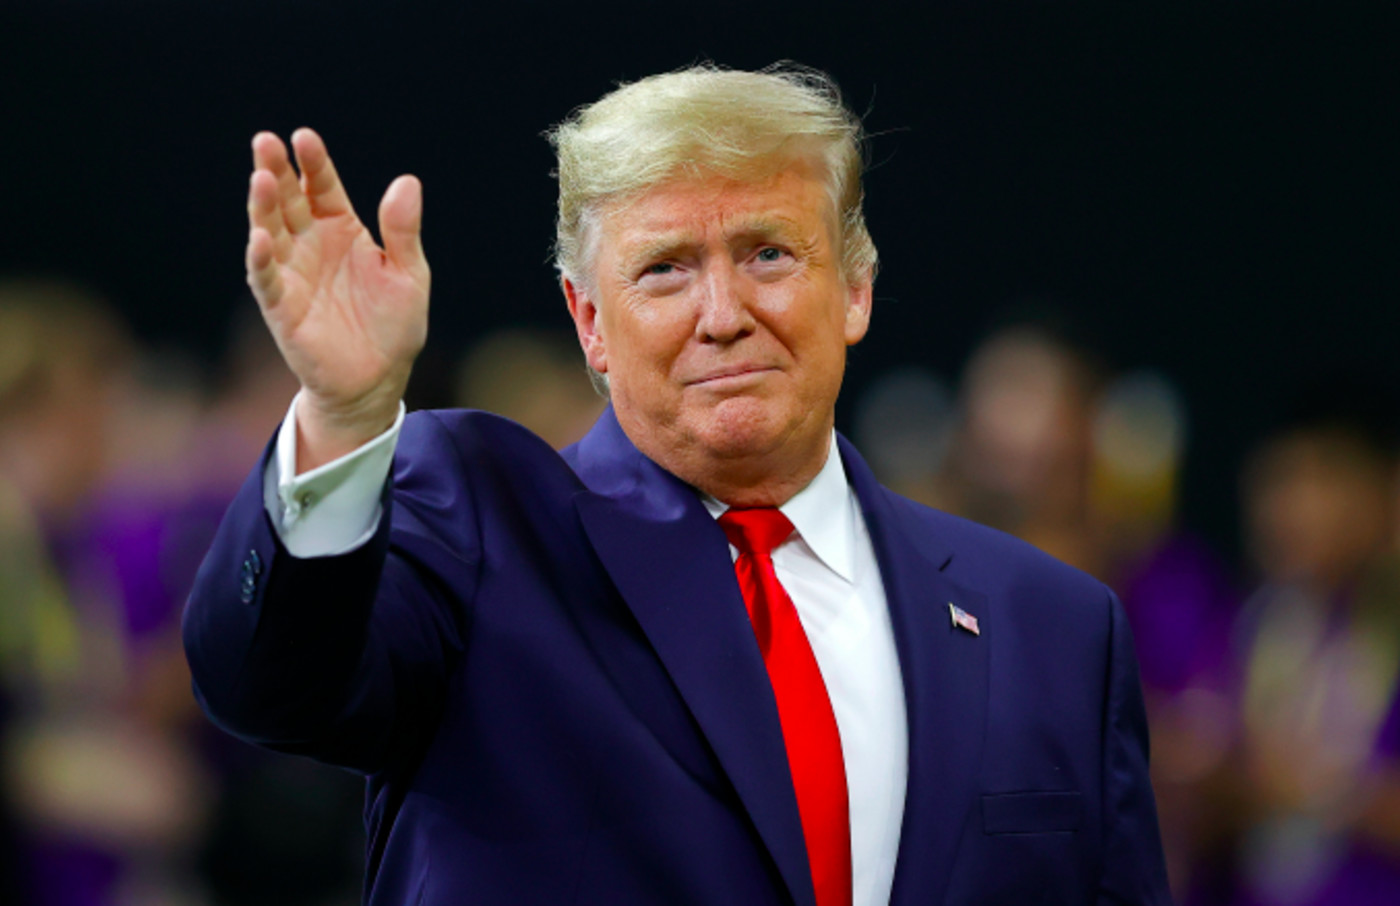 U.S. President Donald Trump waves prior to the College Football Playoff National Championship